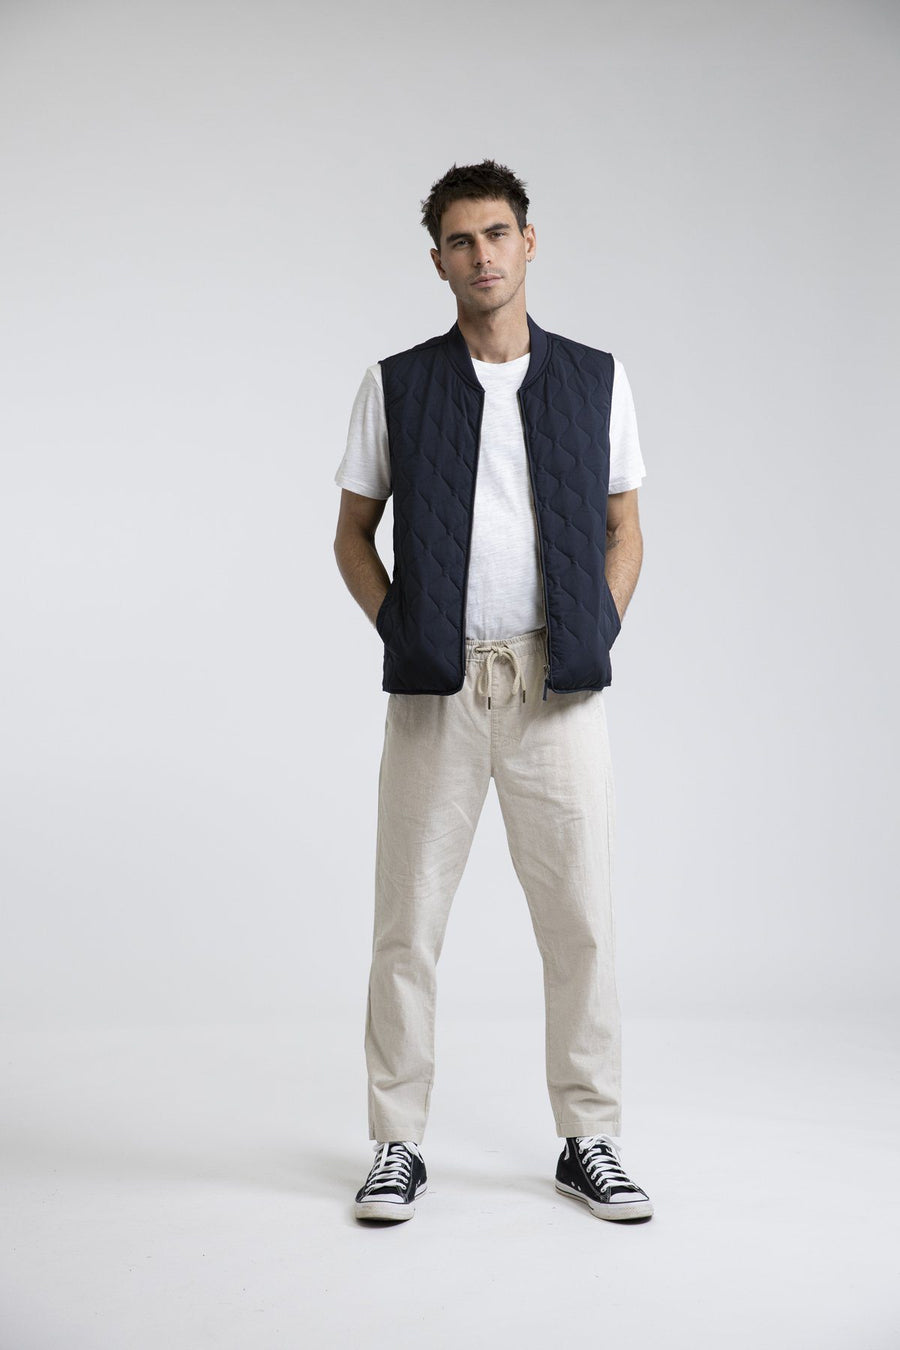 RHYTHM Seafarer Vest Navy MENS APPAREL - Men's Street Jackets Rhythm